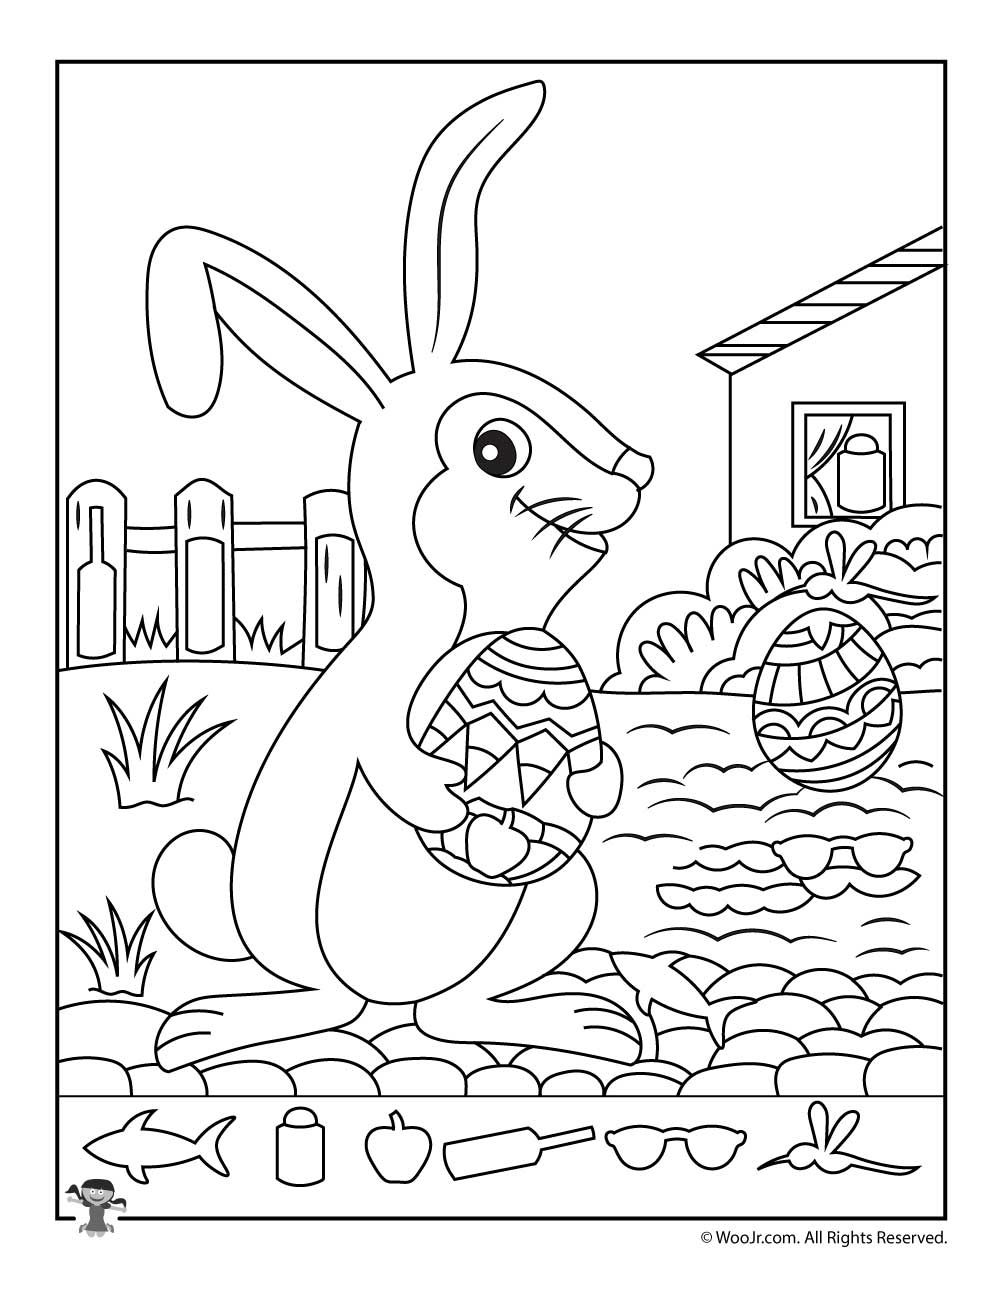 Easter Hidden Pictures Printable Activity Pages | Decoración de ...